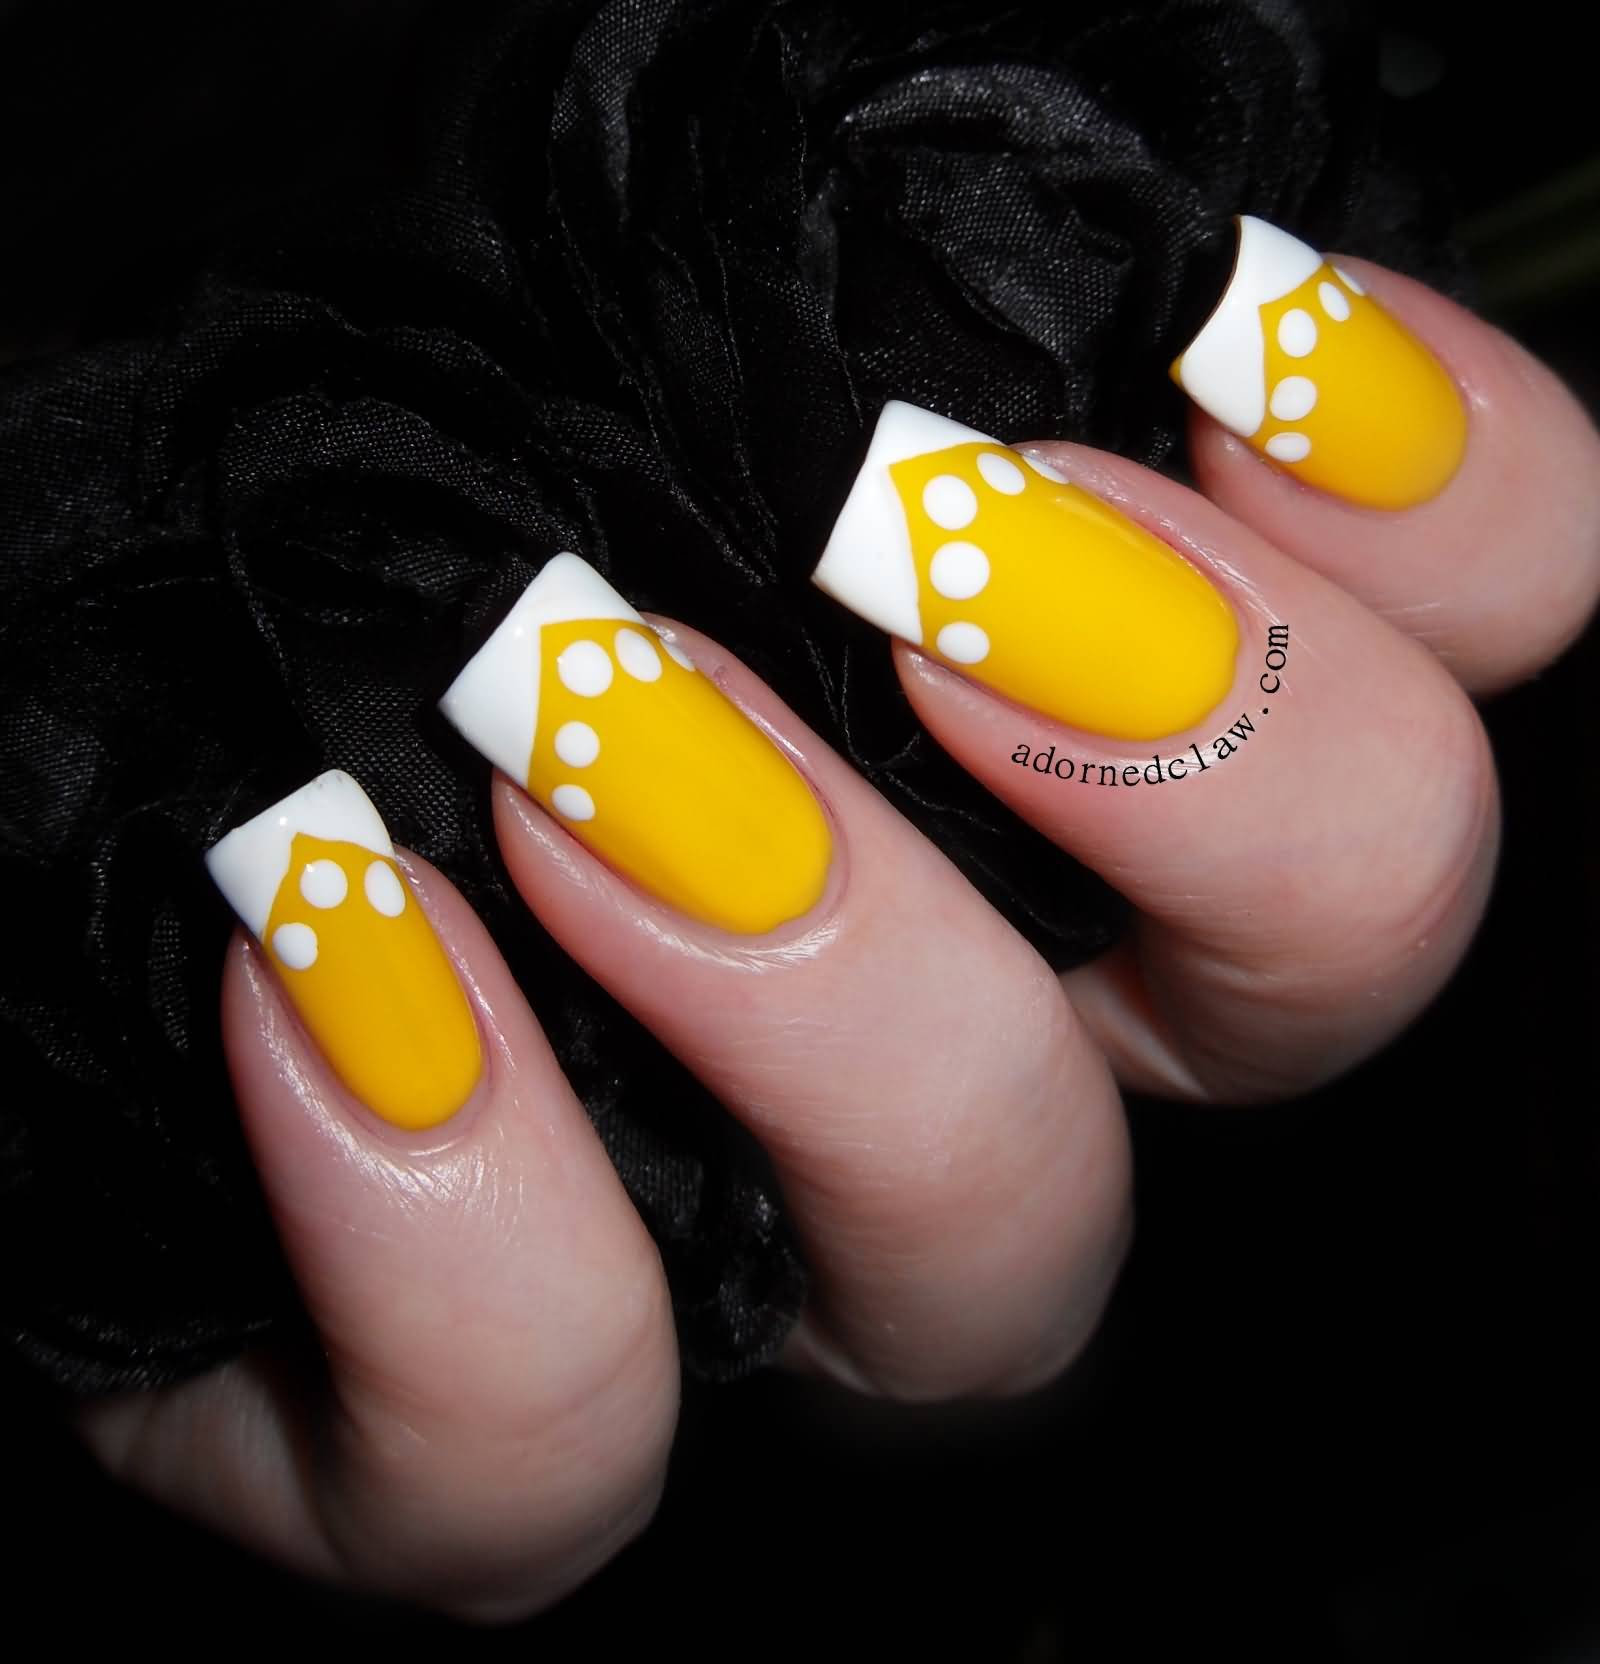 yellow nails with white dots and chevron tip design nail art